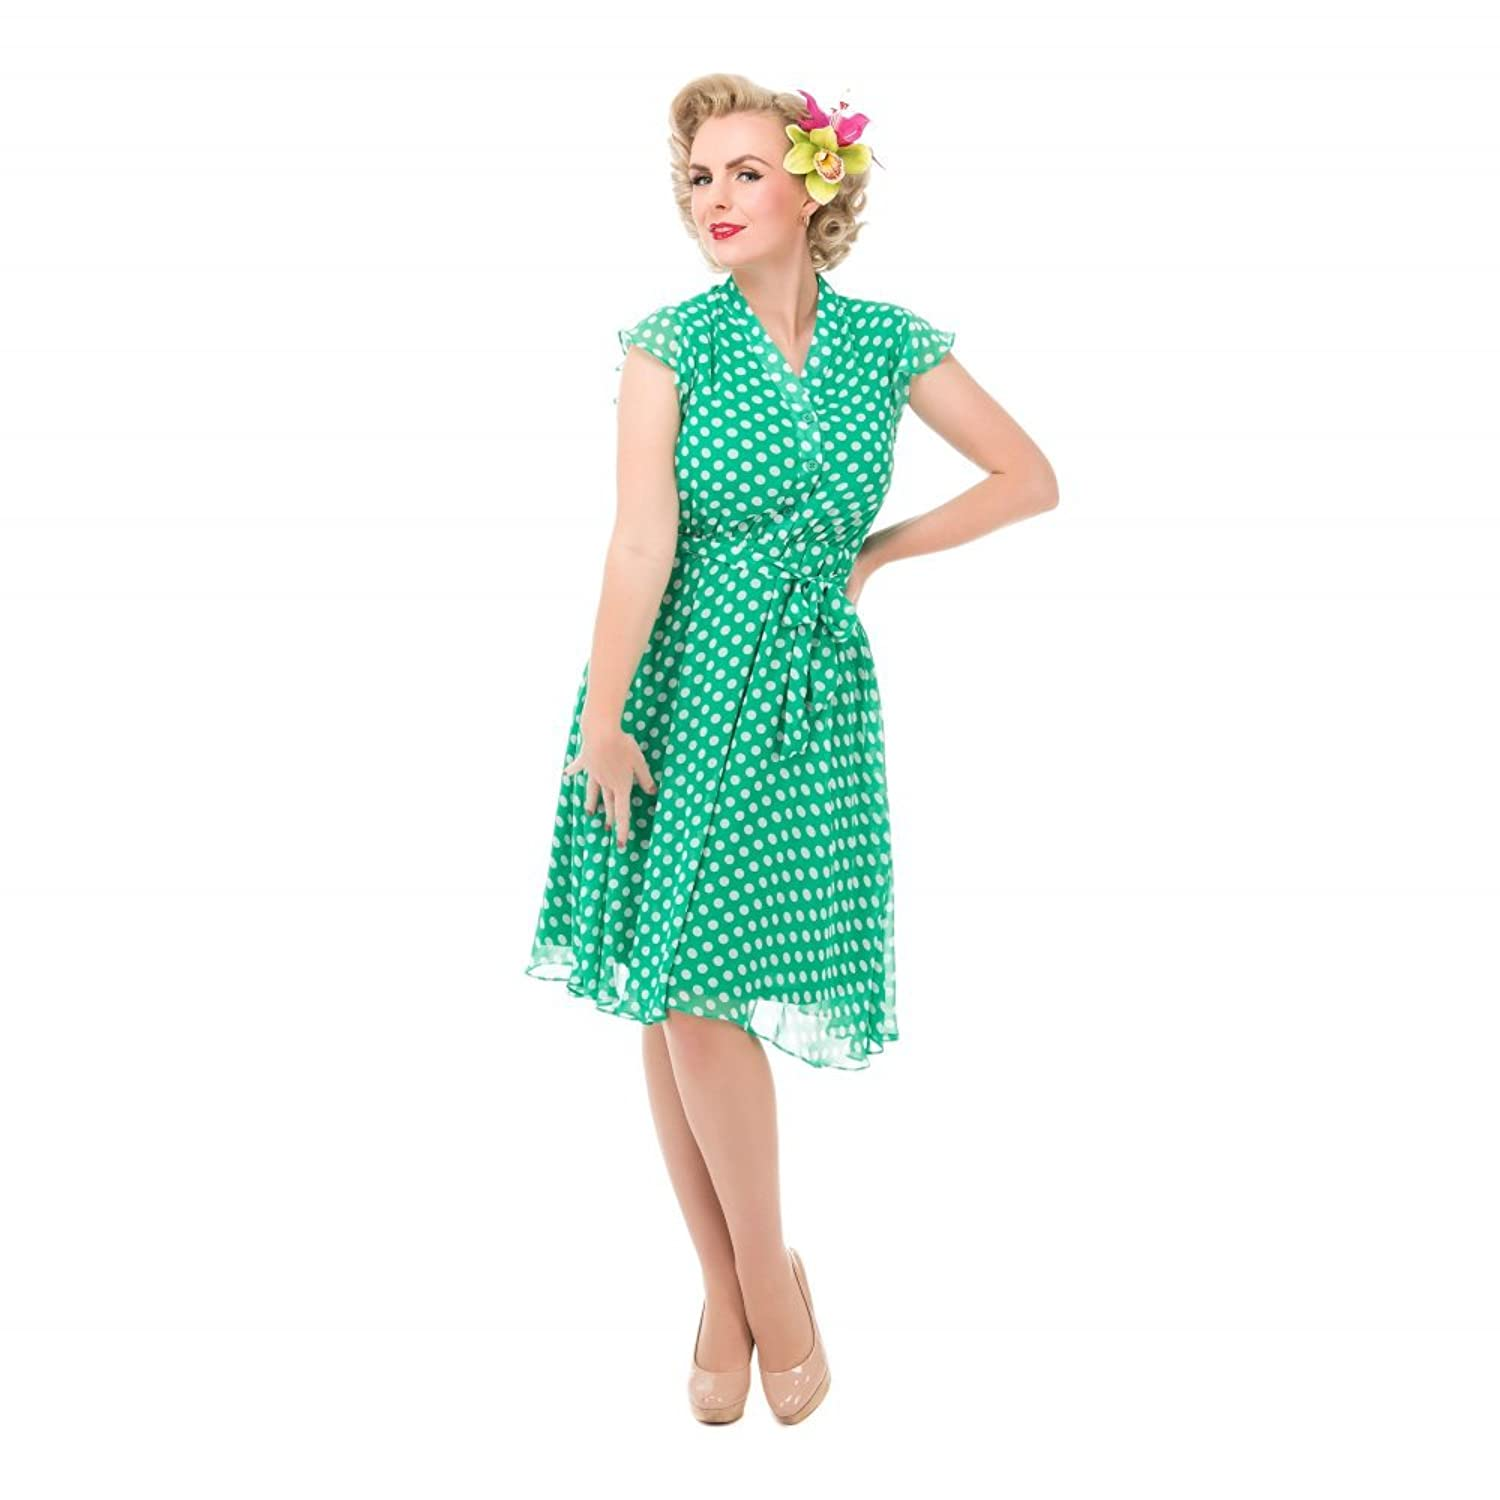 Lindy Bop 'Kody' Green Polka Dot Tea Dress